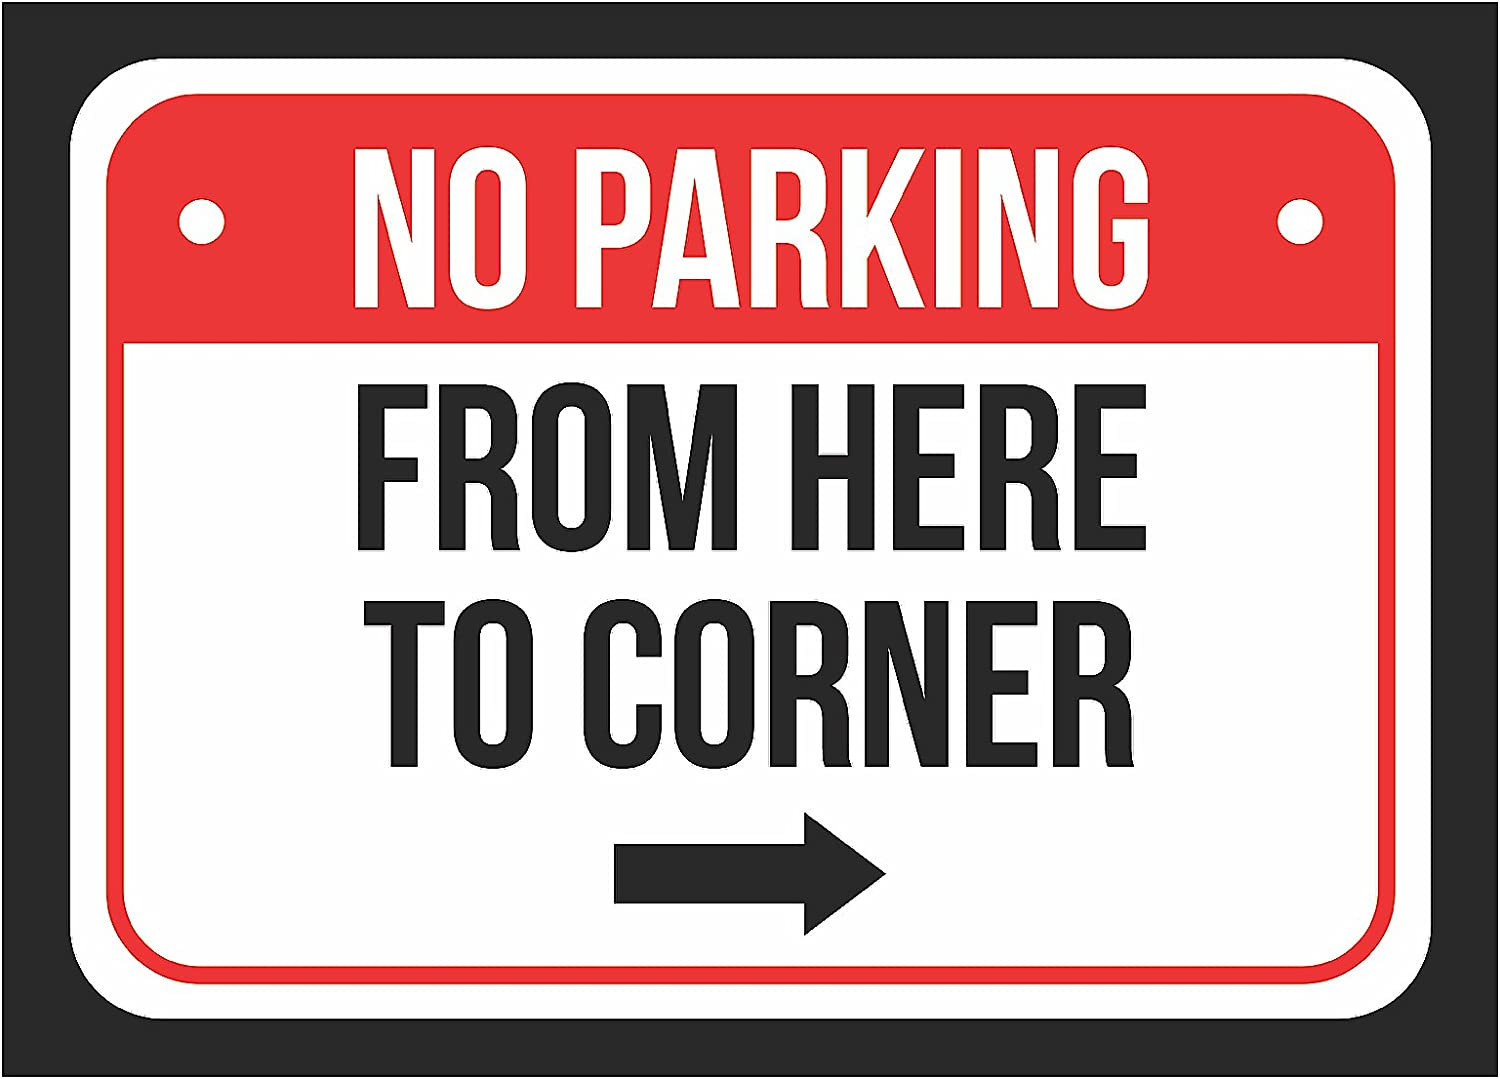 - Amazon.com : No Parking From Here To Corner (with Right Arrow